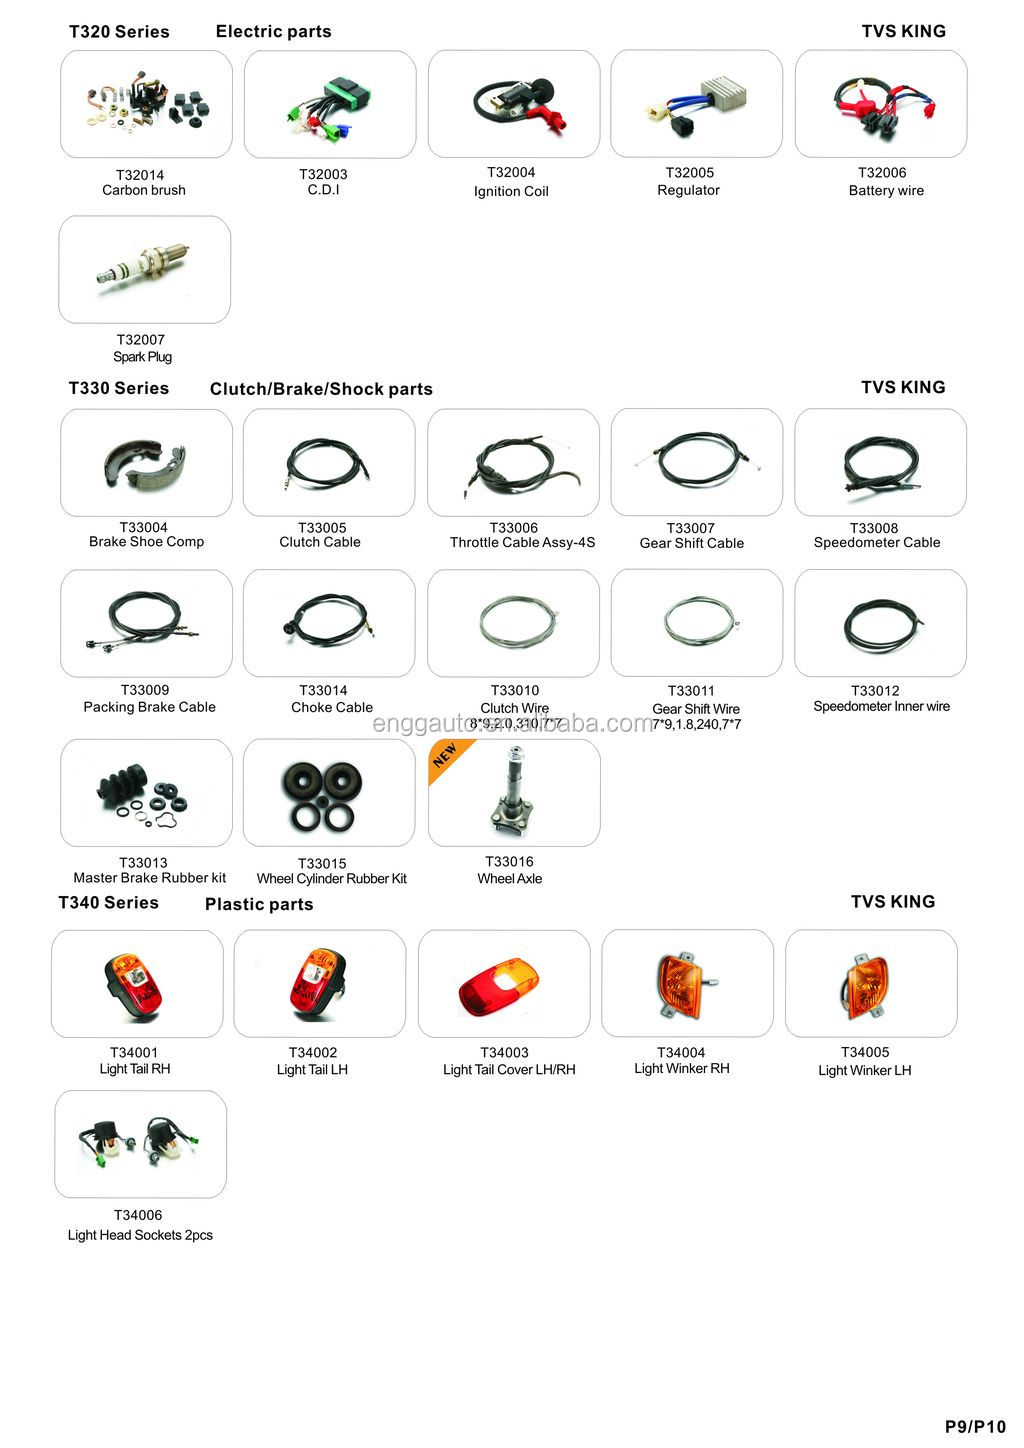 Spare Parts for TVS King